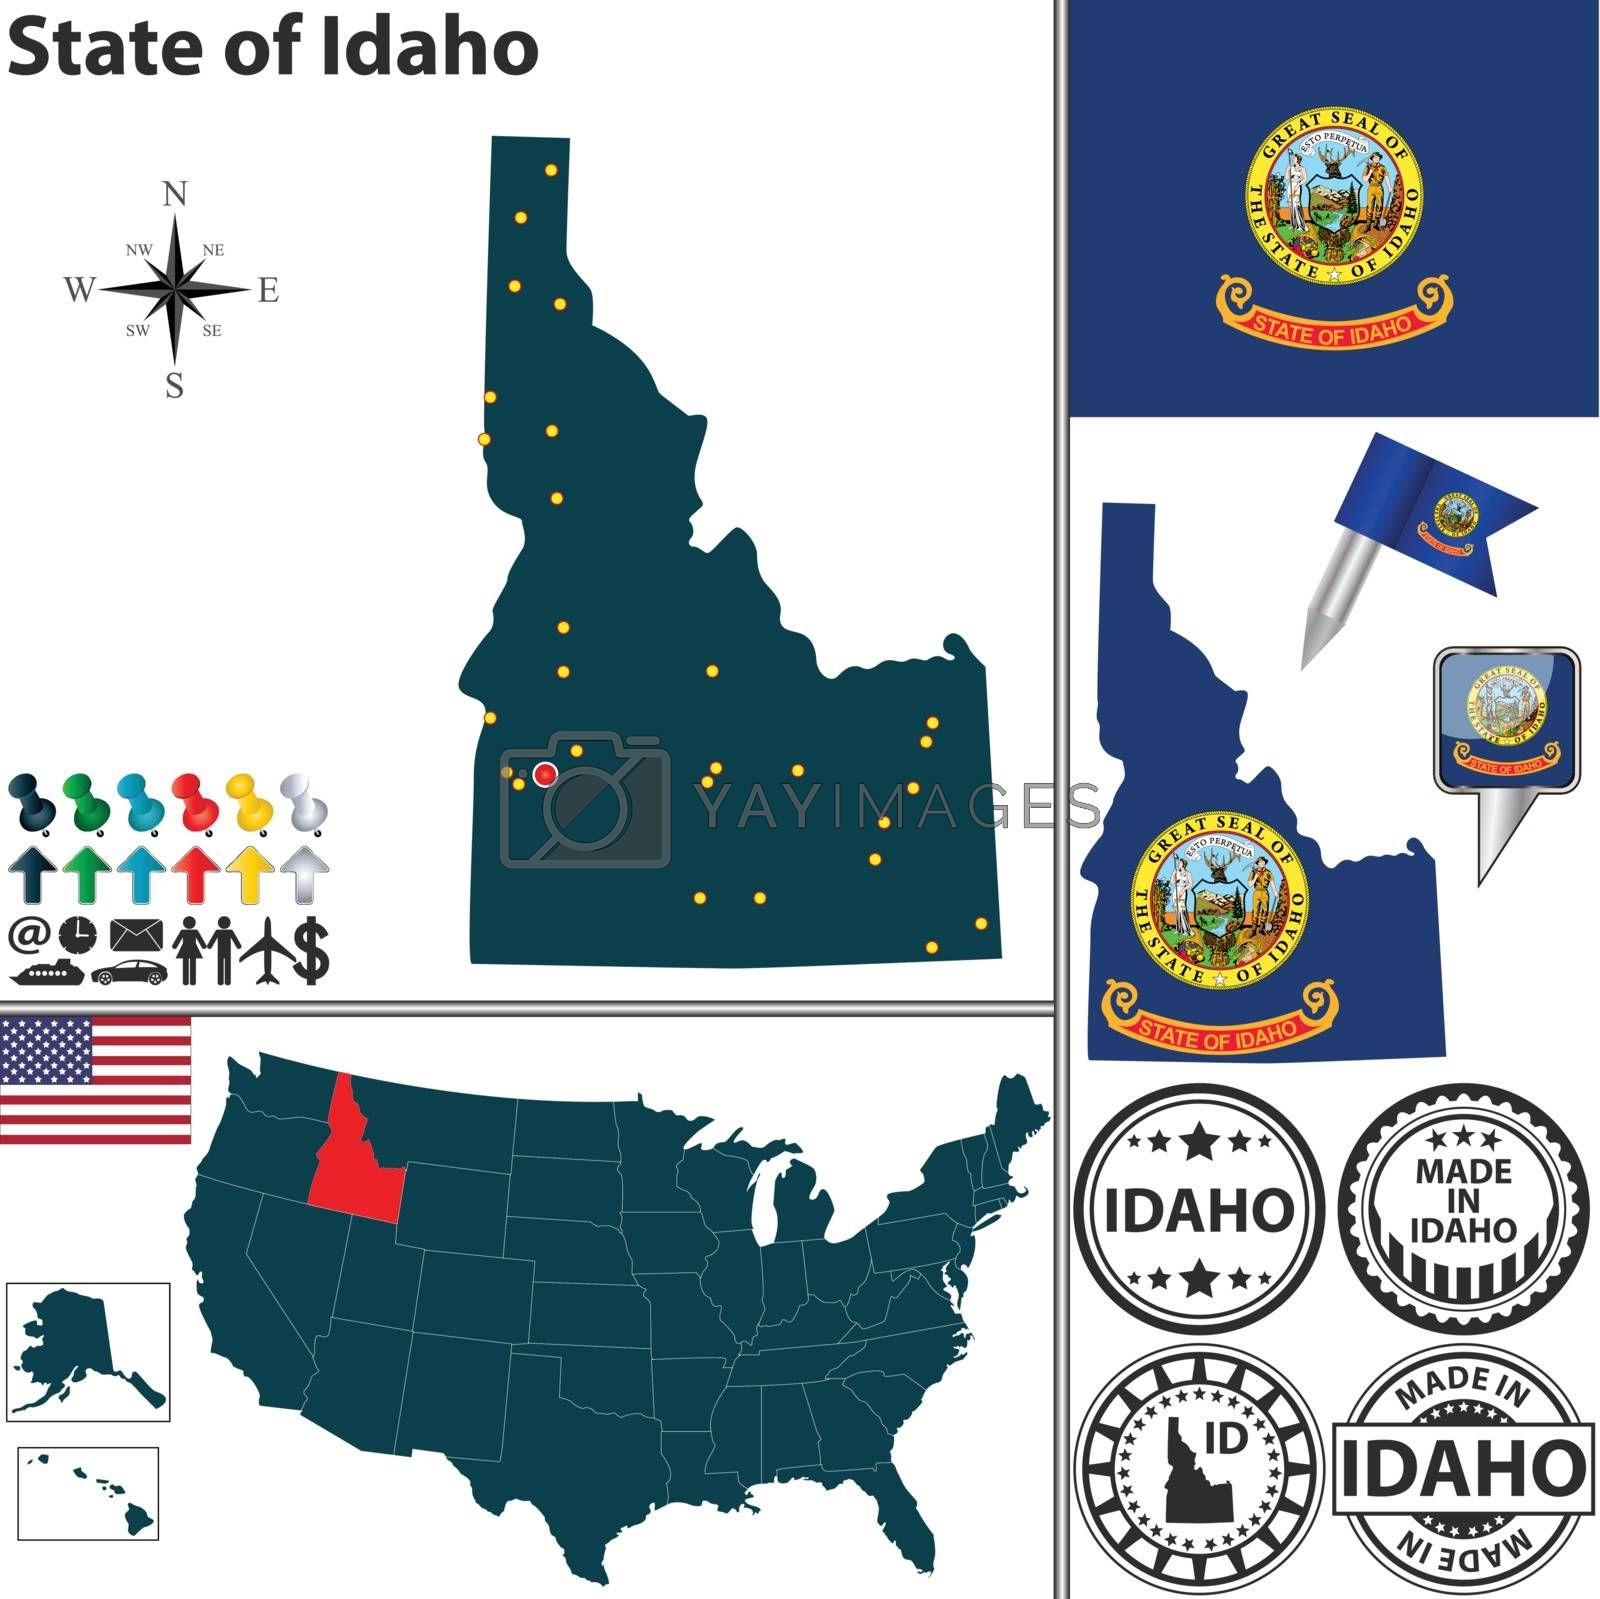 Royalty free image of Map of state Idaho, USA by sateda